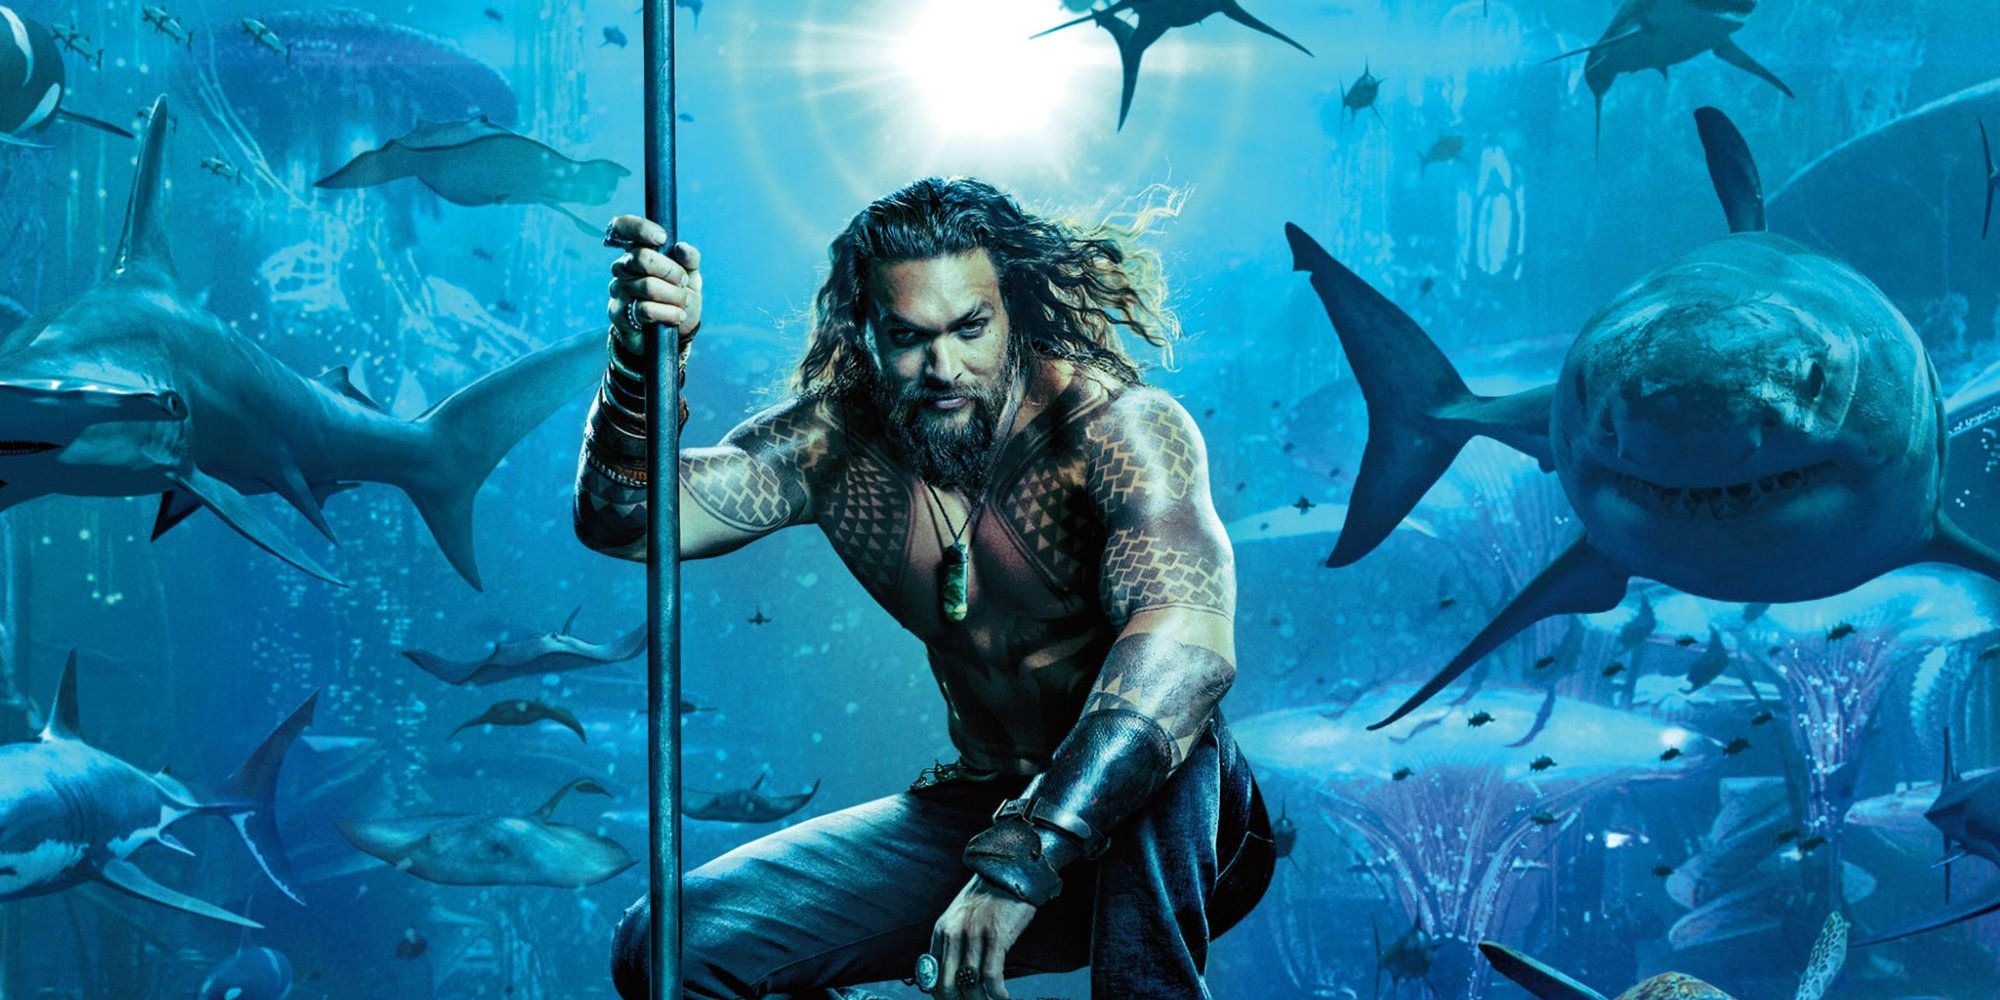 2018 Movie Posters: Aquaman Movie Poster Reveals Arthur Curry's Underwater Army